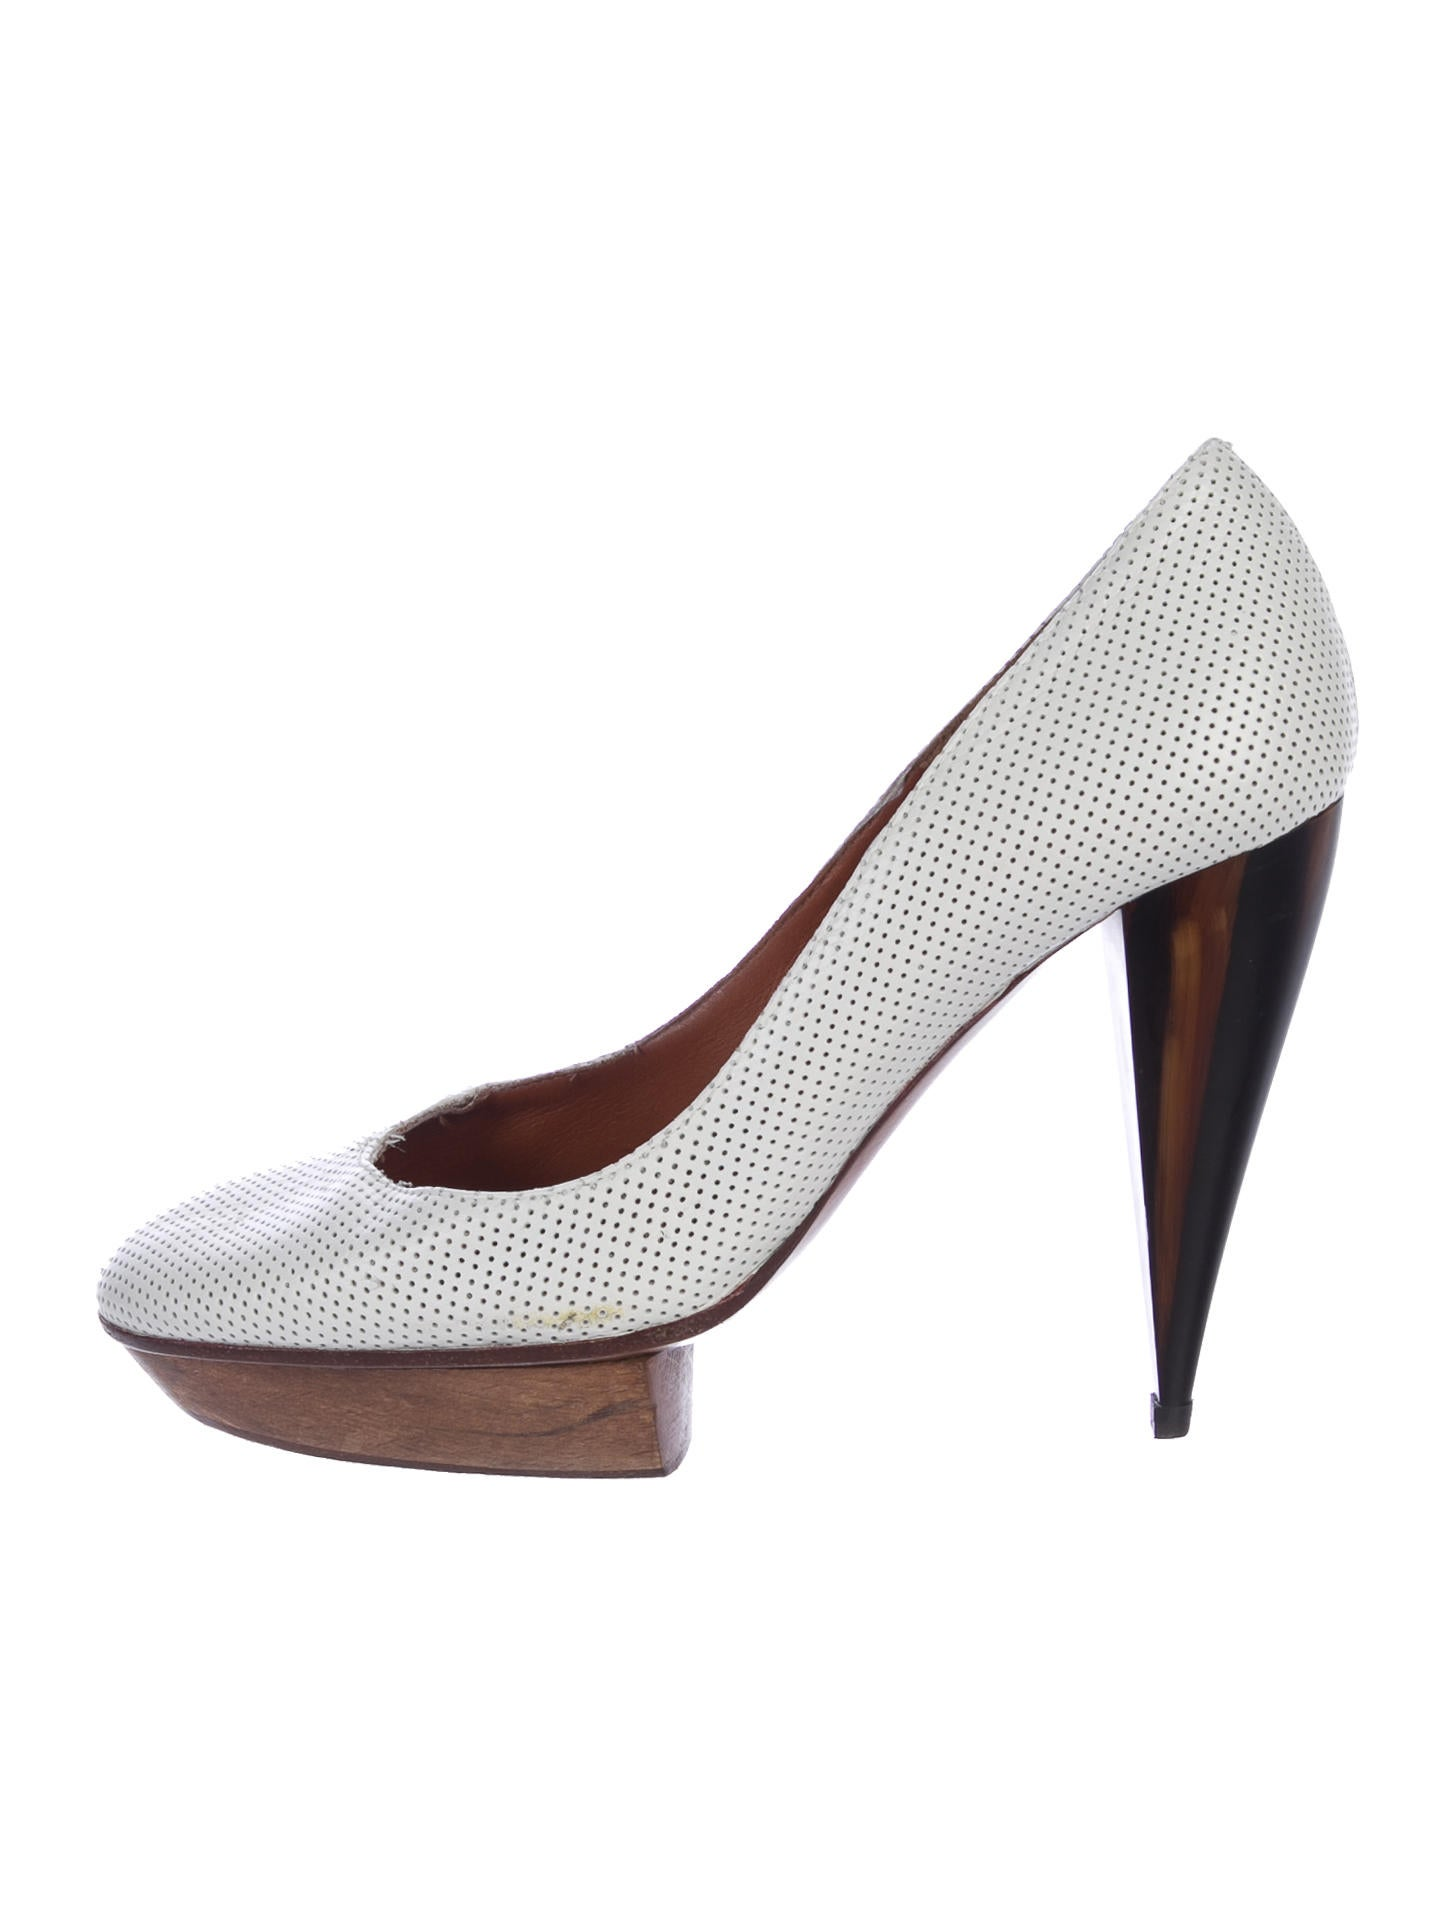 clearance great deals Lanvin Leather Perforated Pumps footlocker finishline cheap online free shipping get to buy uvQJpp2N